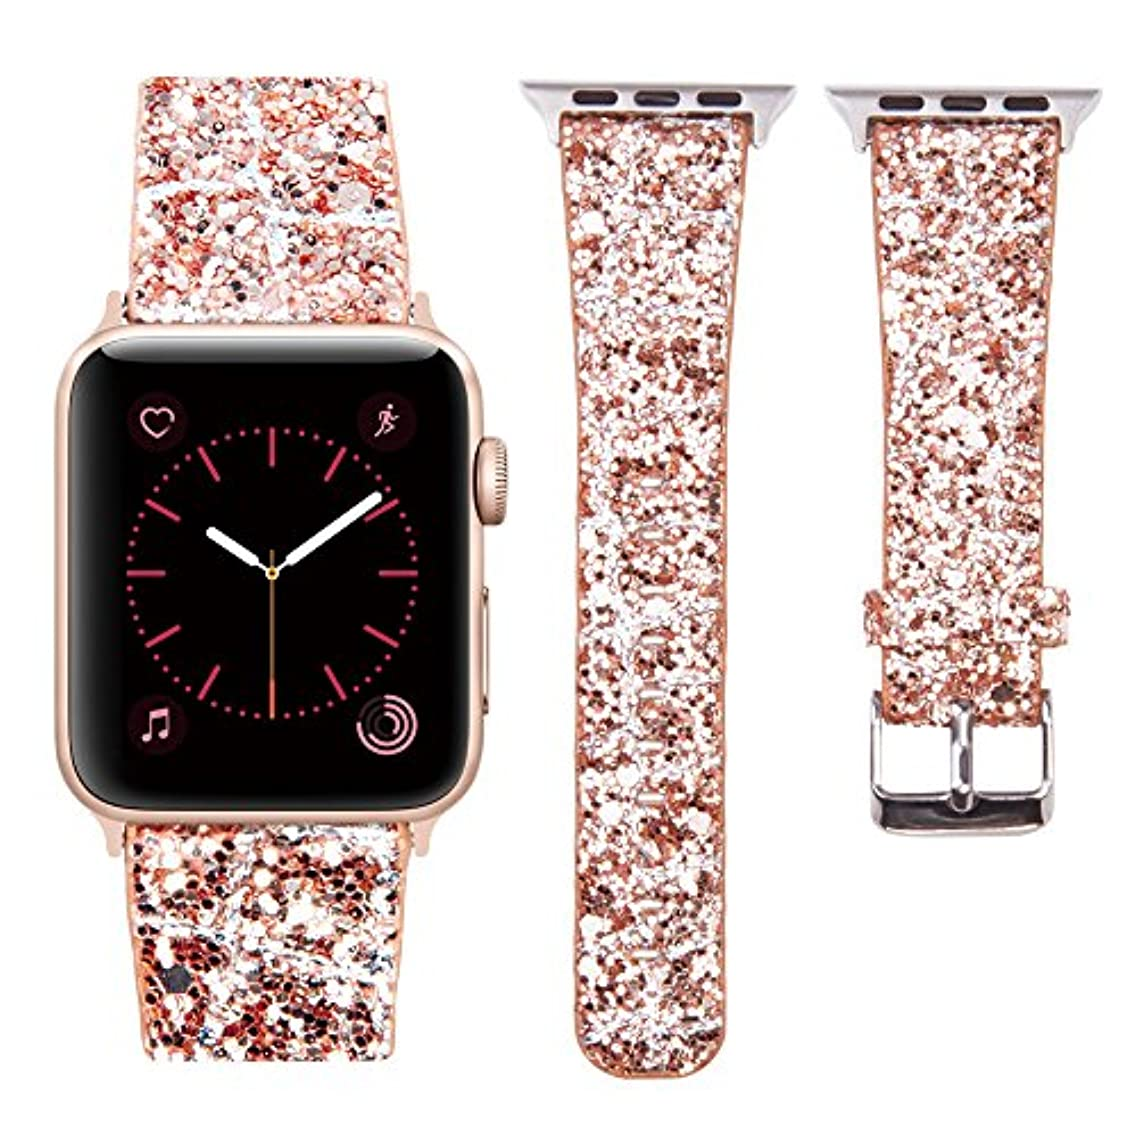 MIFFO Compatible with Apple Watch Band 38mm 40mm 42mm 44mm, 3D Glitter Bling Leather Wristband iWatch Strap Replacement for Apple Watch Series 4 Series 3 Series 2 Series 1